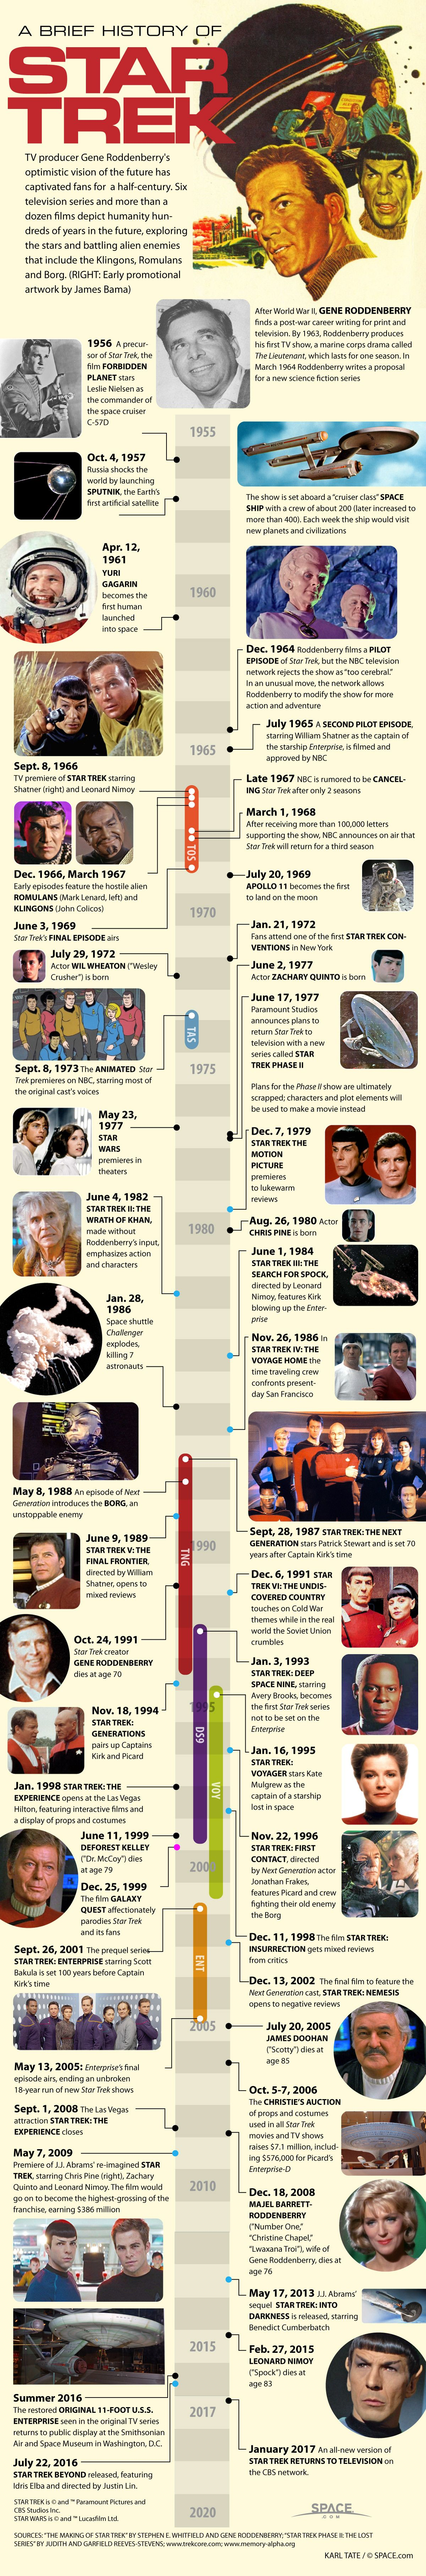 an analysis and timeline of the television show star trek Timeline of star trek below is an abridged timeline of events supposing that only two and a half years had passed since the events of the tv show for star trek.